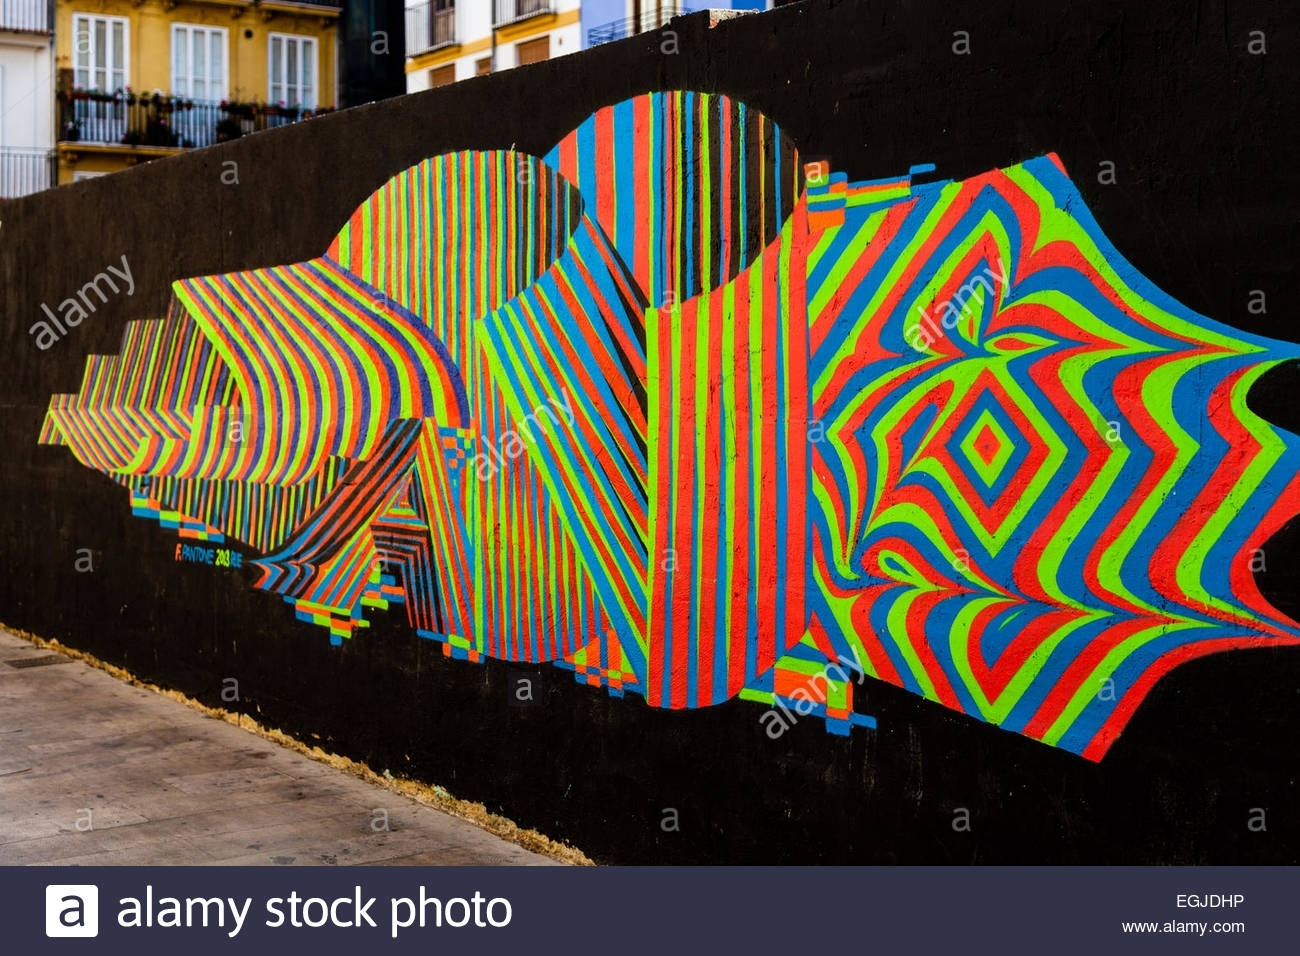 Colorful Abstract Lines On The Public Wall, Art Or Graffiti Pertaining To Most Recently Released Abstract Graffiti Wall Art (View 8 of 20)